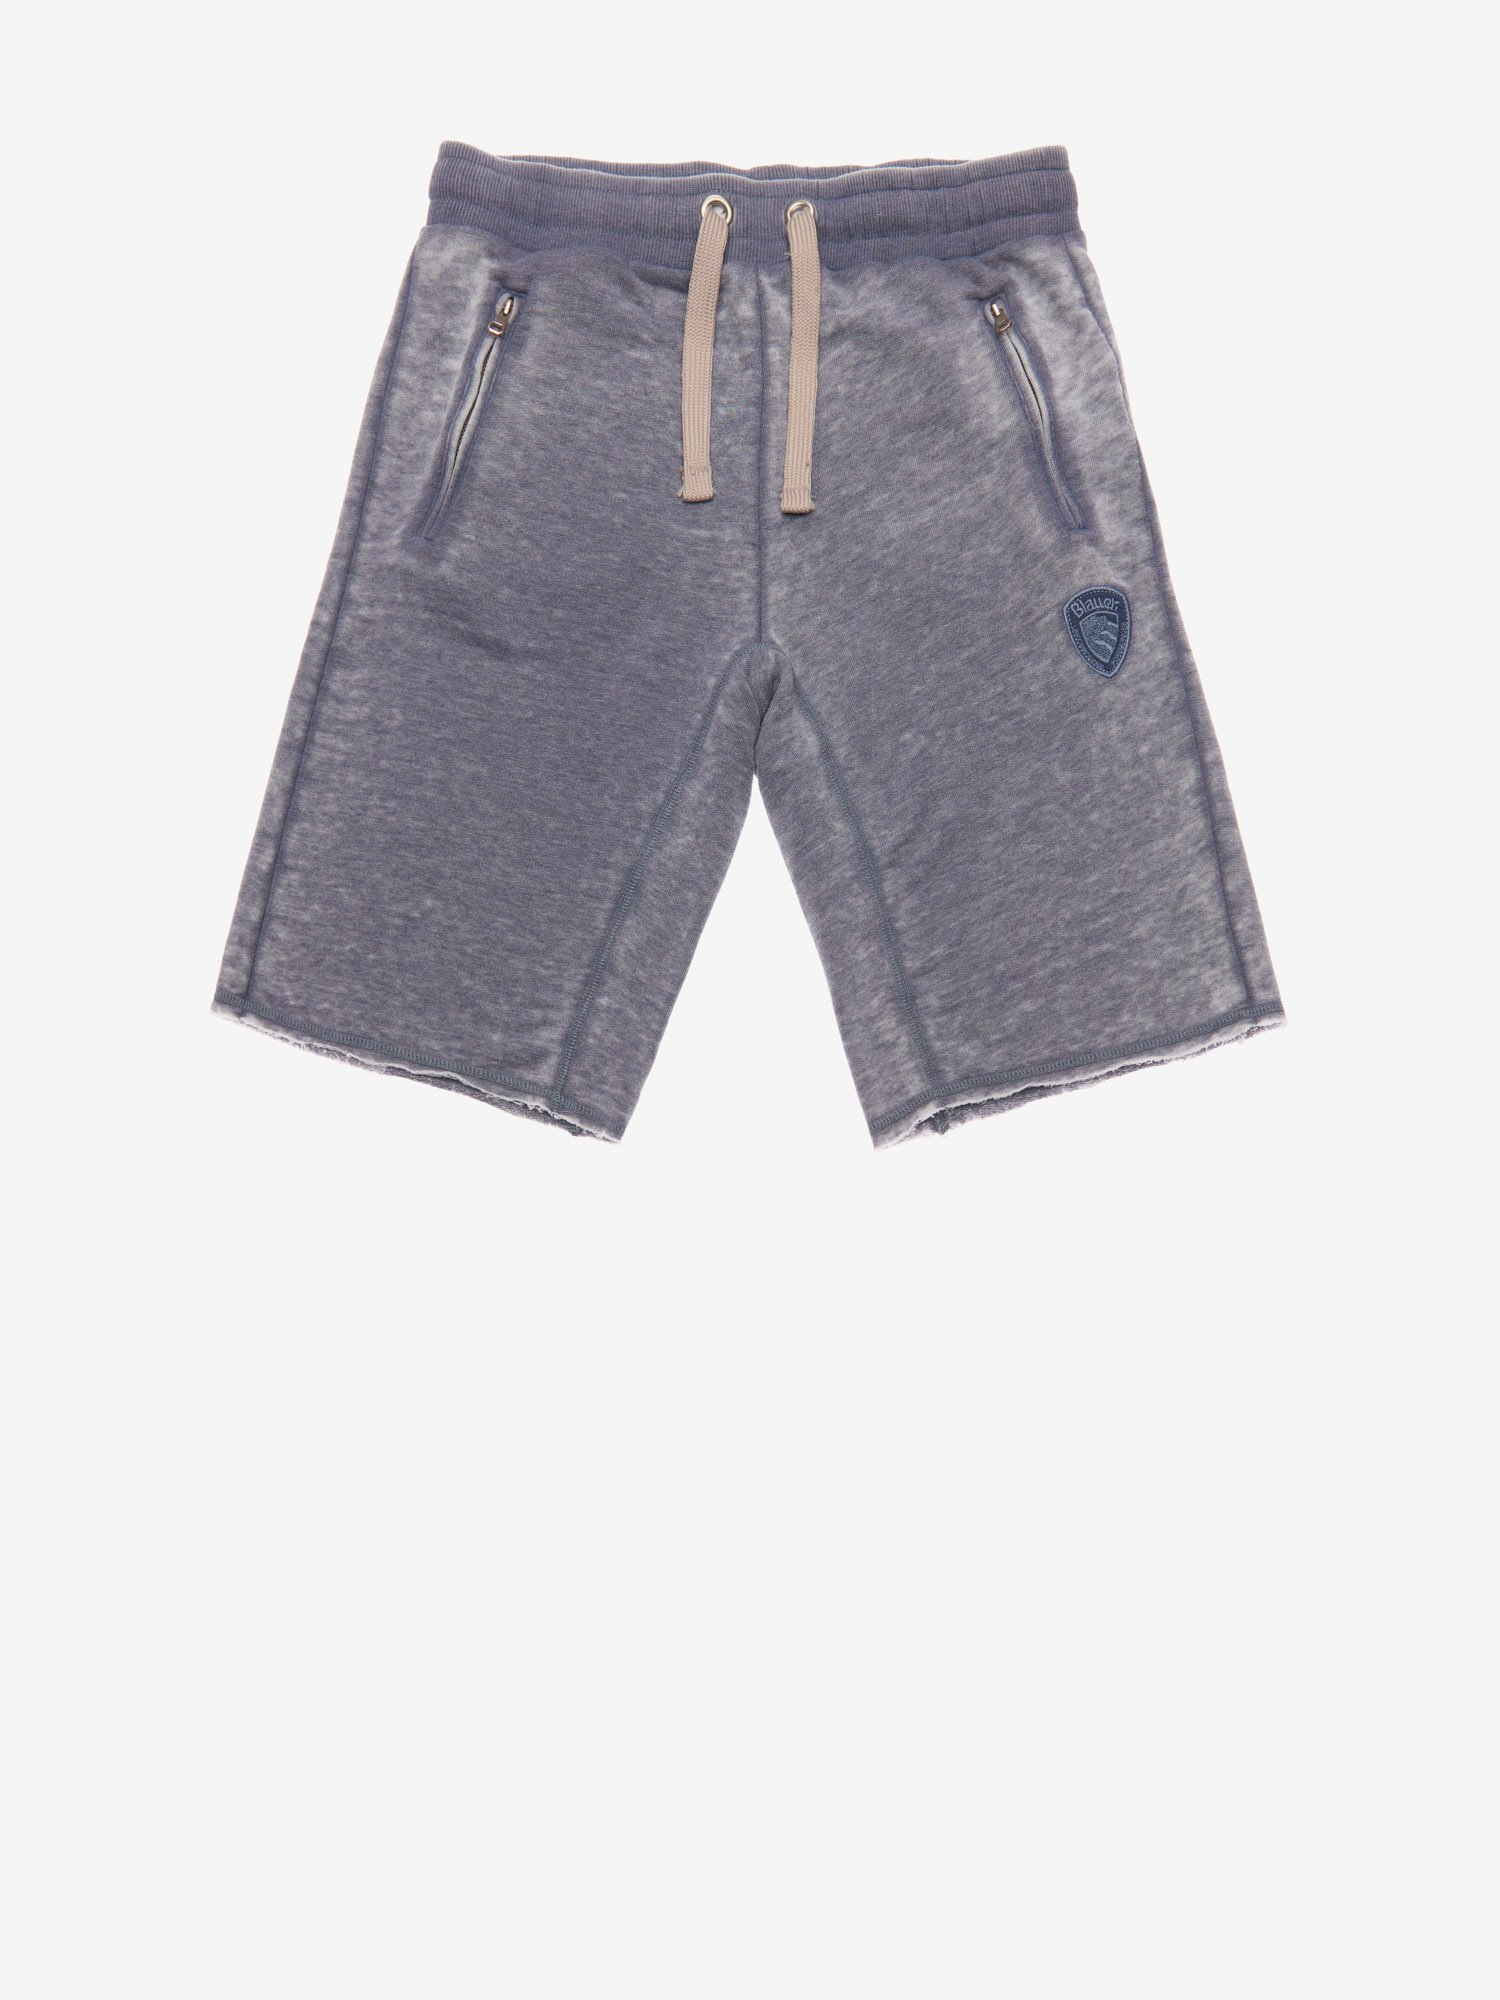 BURNOUT FLEECE SHORTS - Blauer